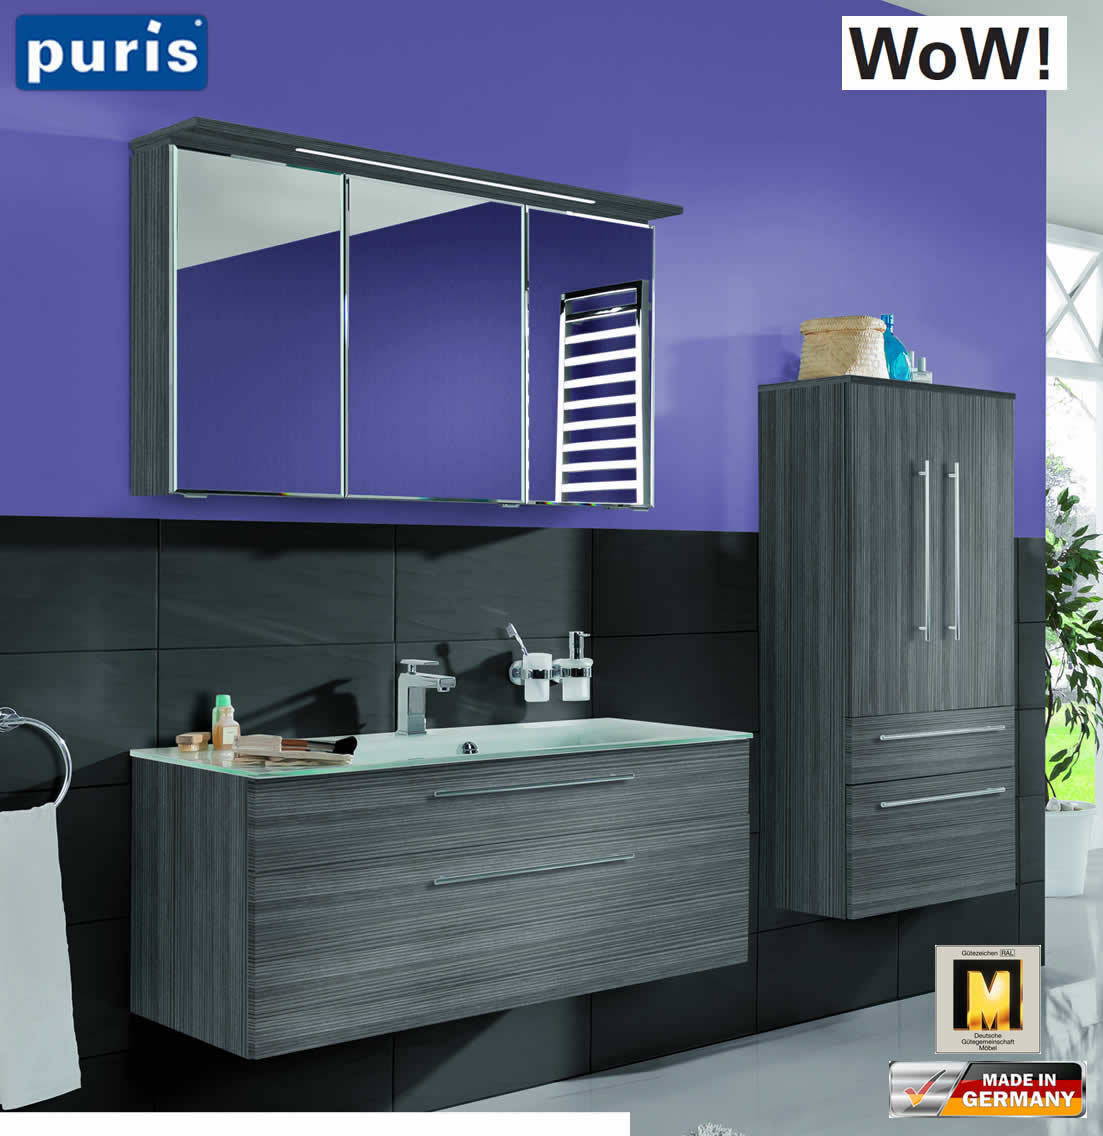 badm bel set puris reuniecollegenoetsele. Black Bedroom Furniture Sets. Home Design Ideas